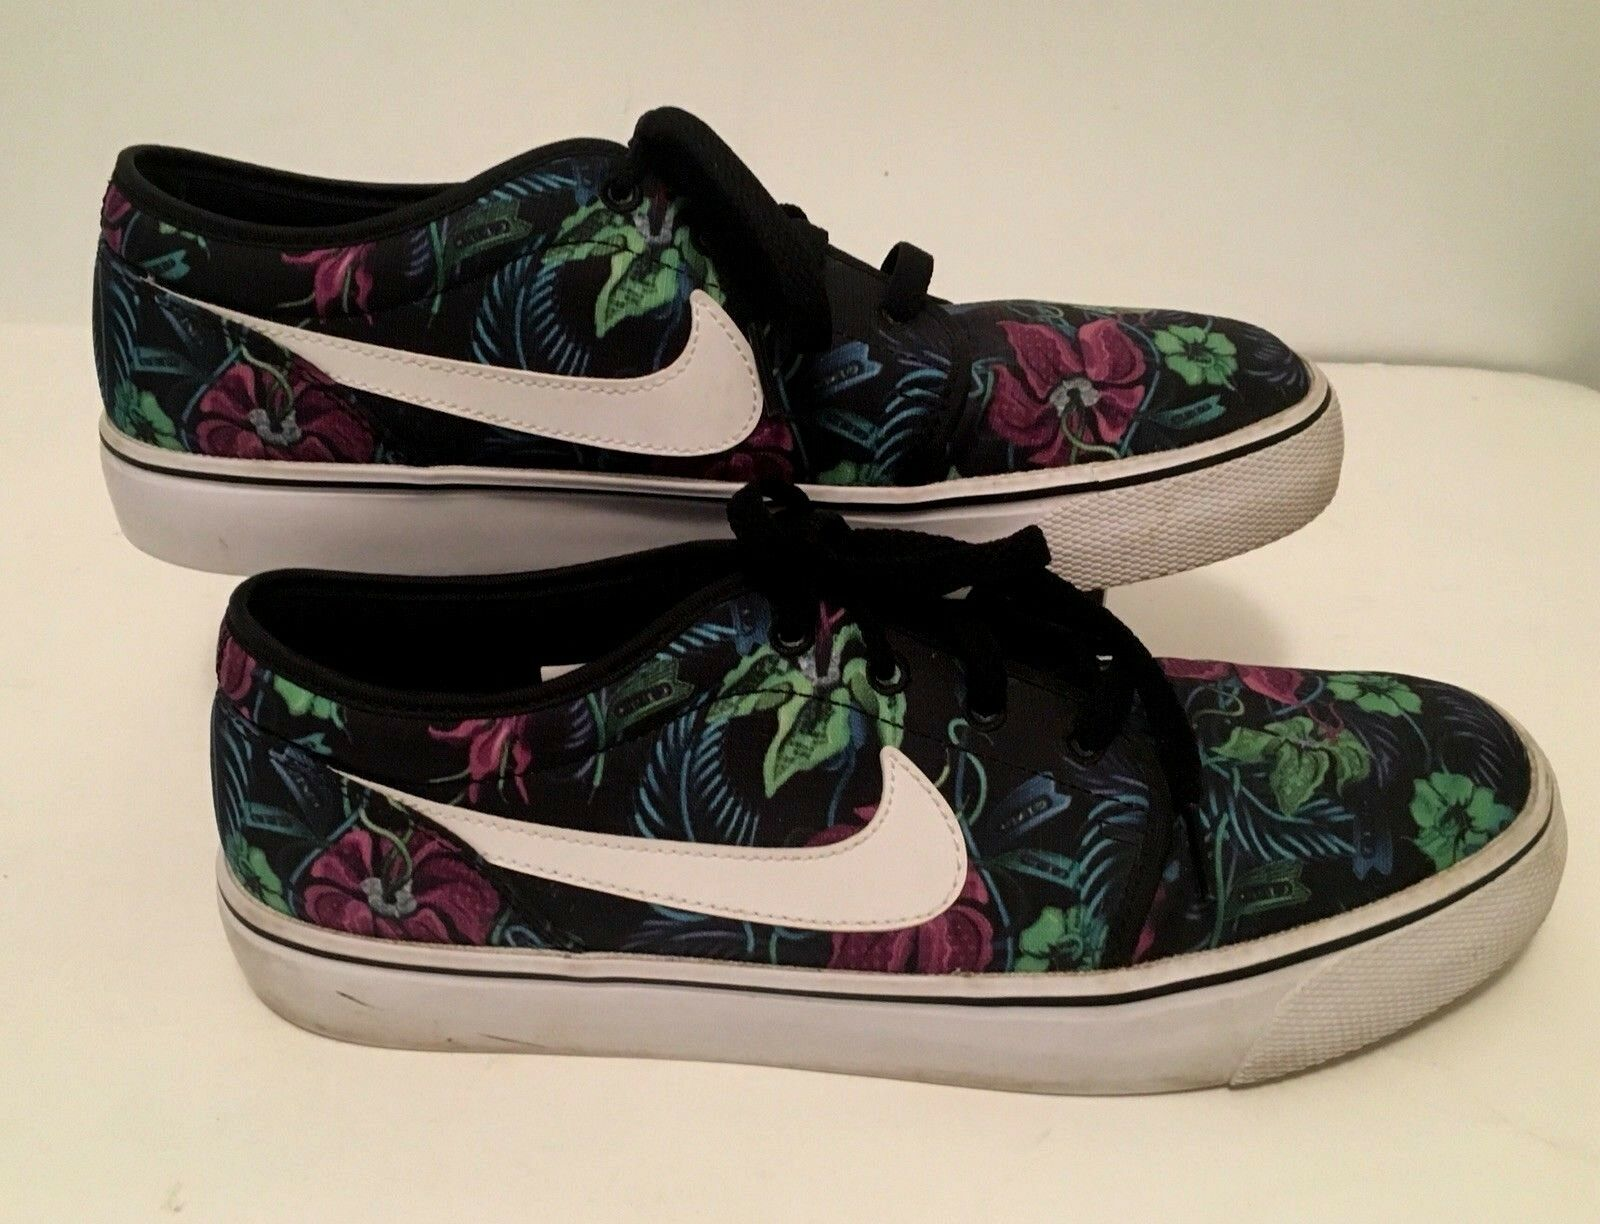 NIKE Mens Sneakers Board shoes Size 9 Smoky Lotus Low Tropical Floral 631697011